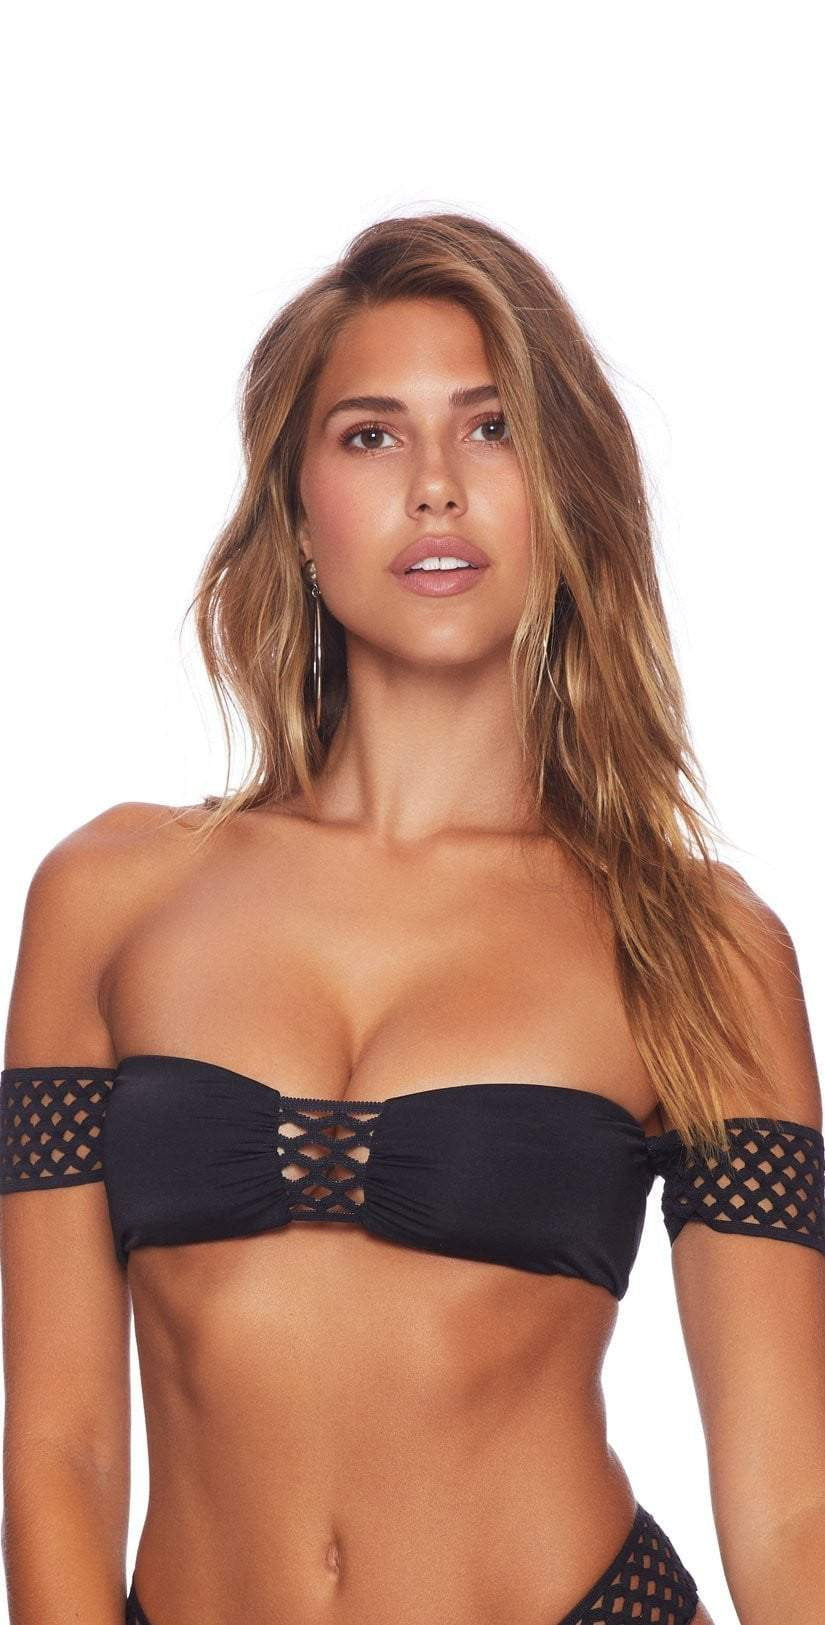 Beach Bunny Hayden Off Shoulder Bikini Top In Black B18110T9-BLK: